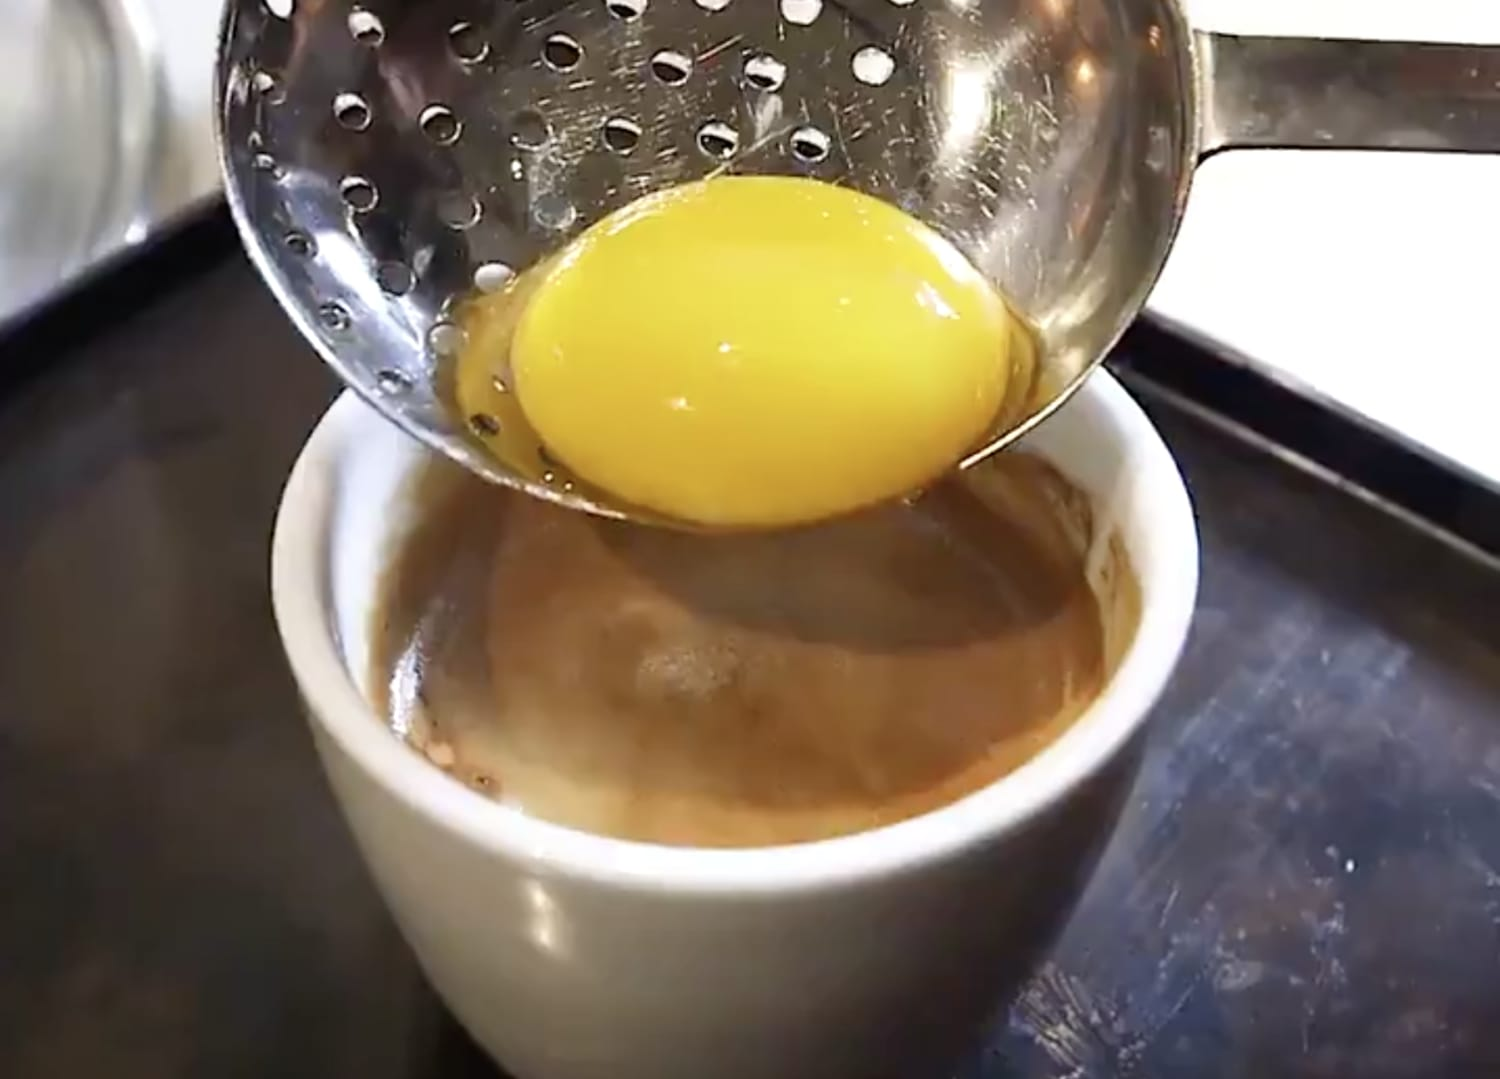 Twitter Is Freaking Out Over This Egg Yolk Cappuccino